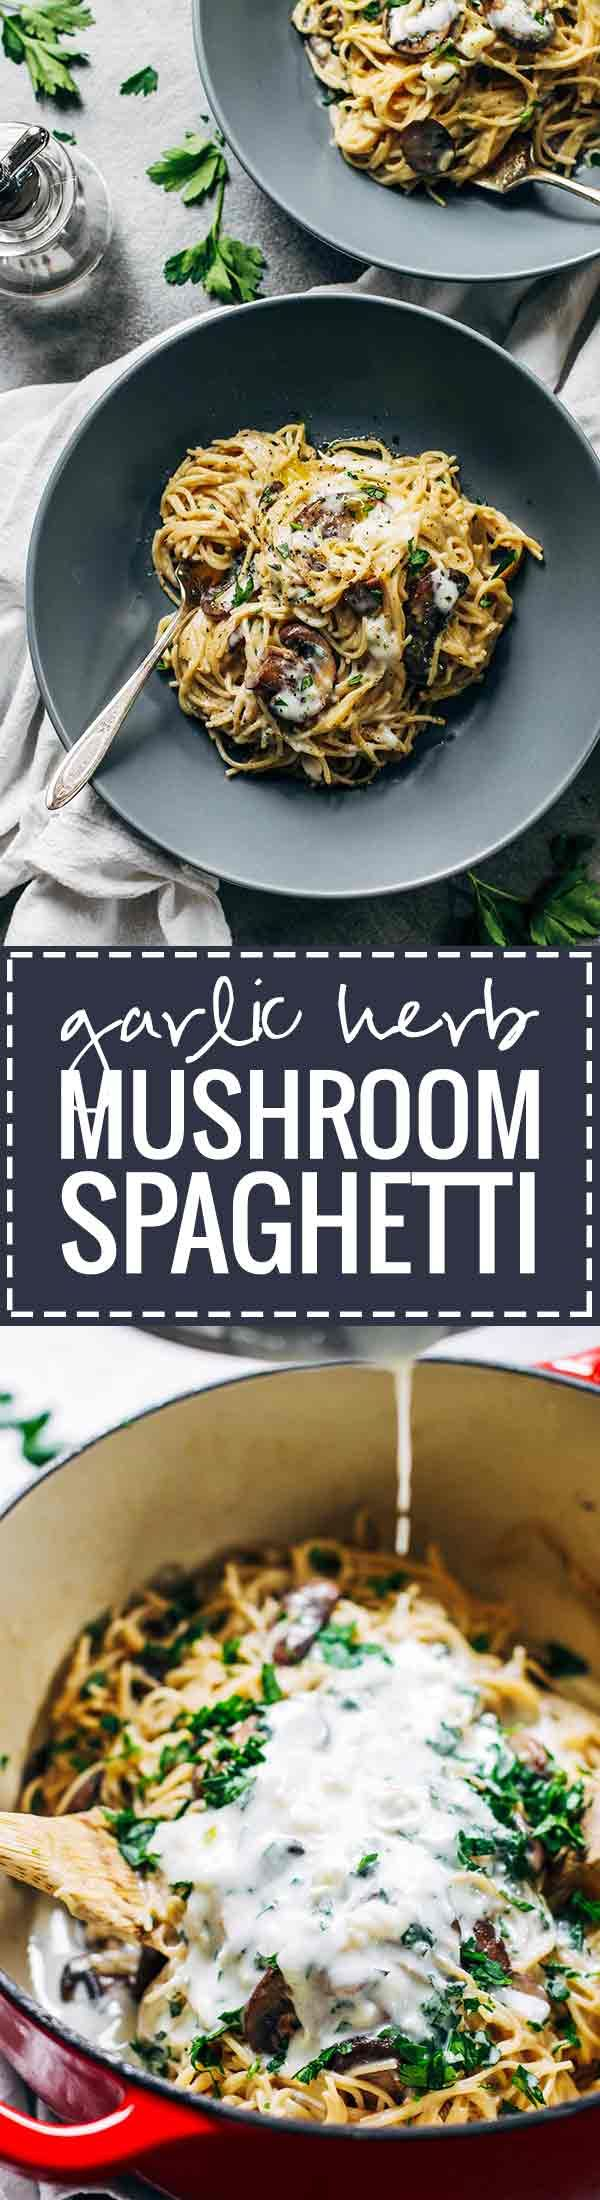 search shoes by upc Creamy Garlic Herb Mushroom Spaghetti